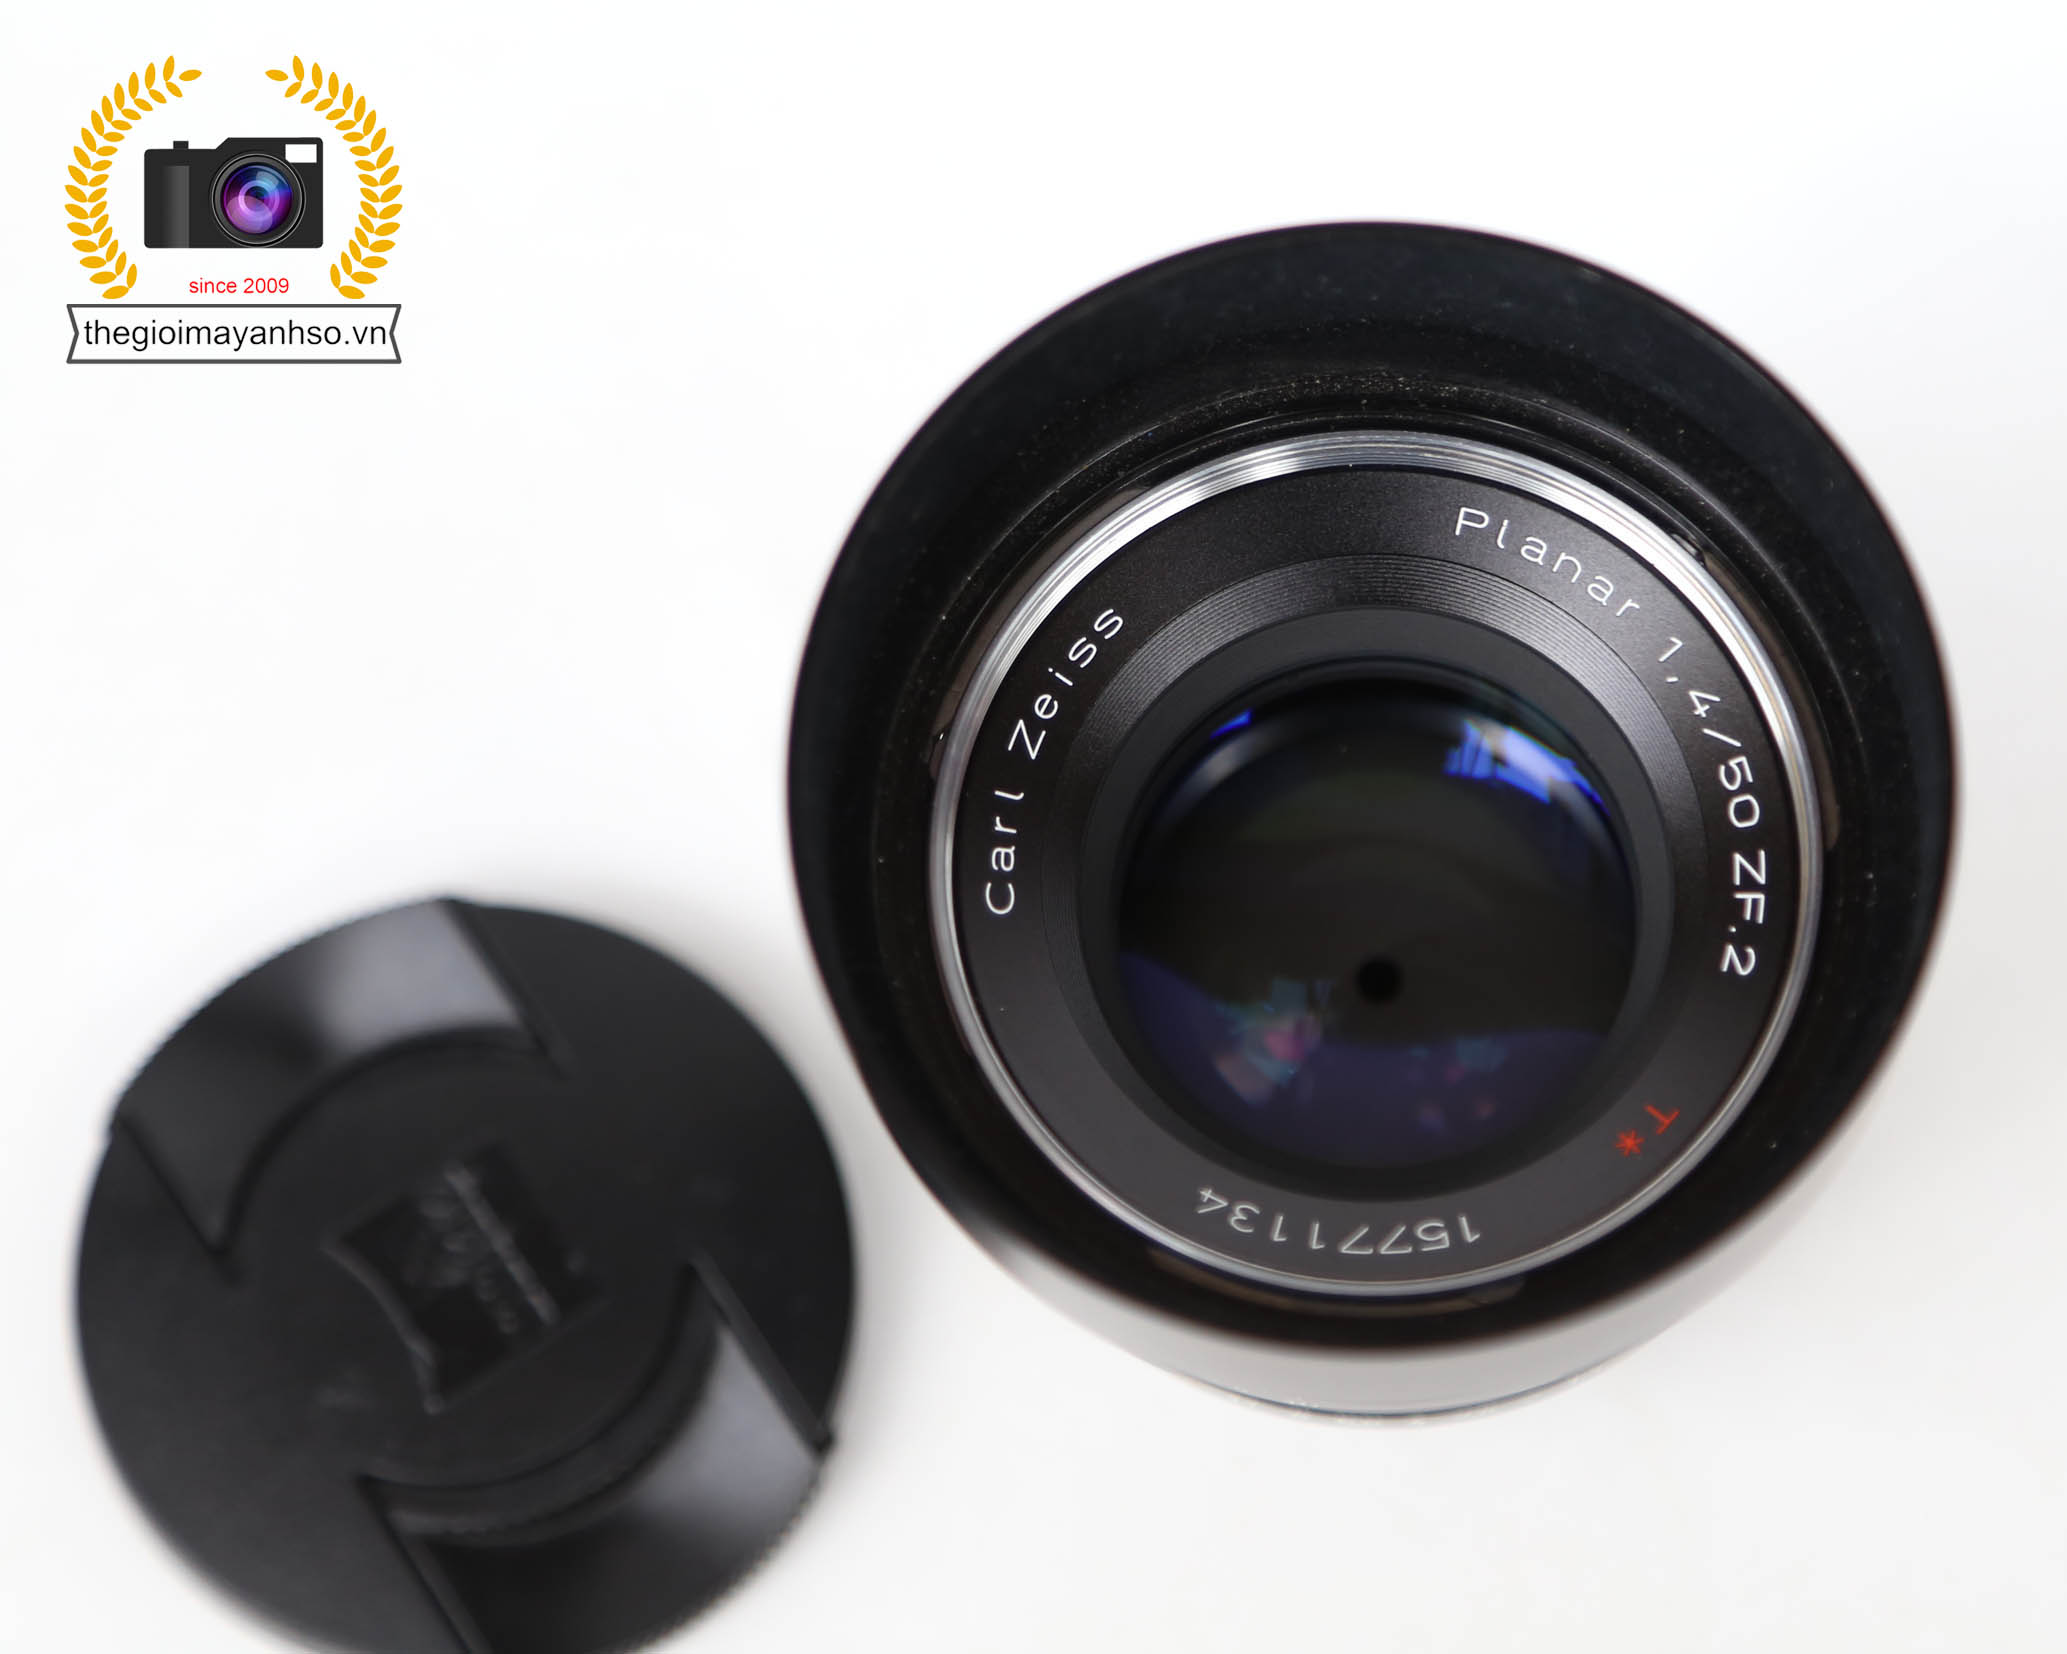 Zeiss Planar T* 50mm F/1.4 ZF 2 Lens for Nikon